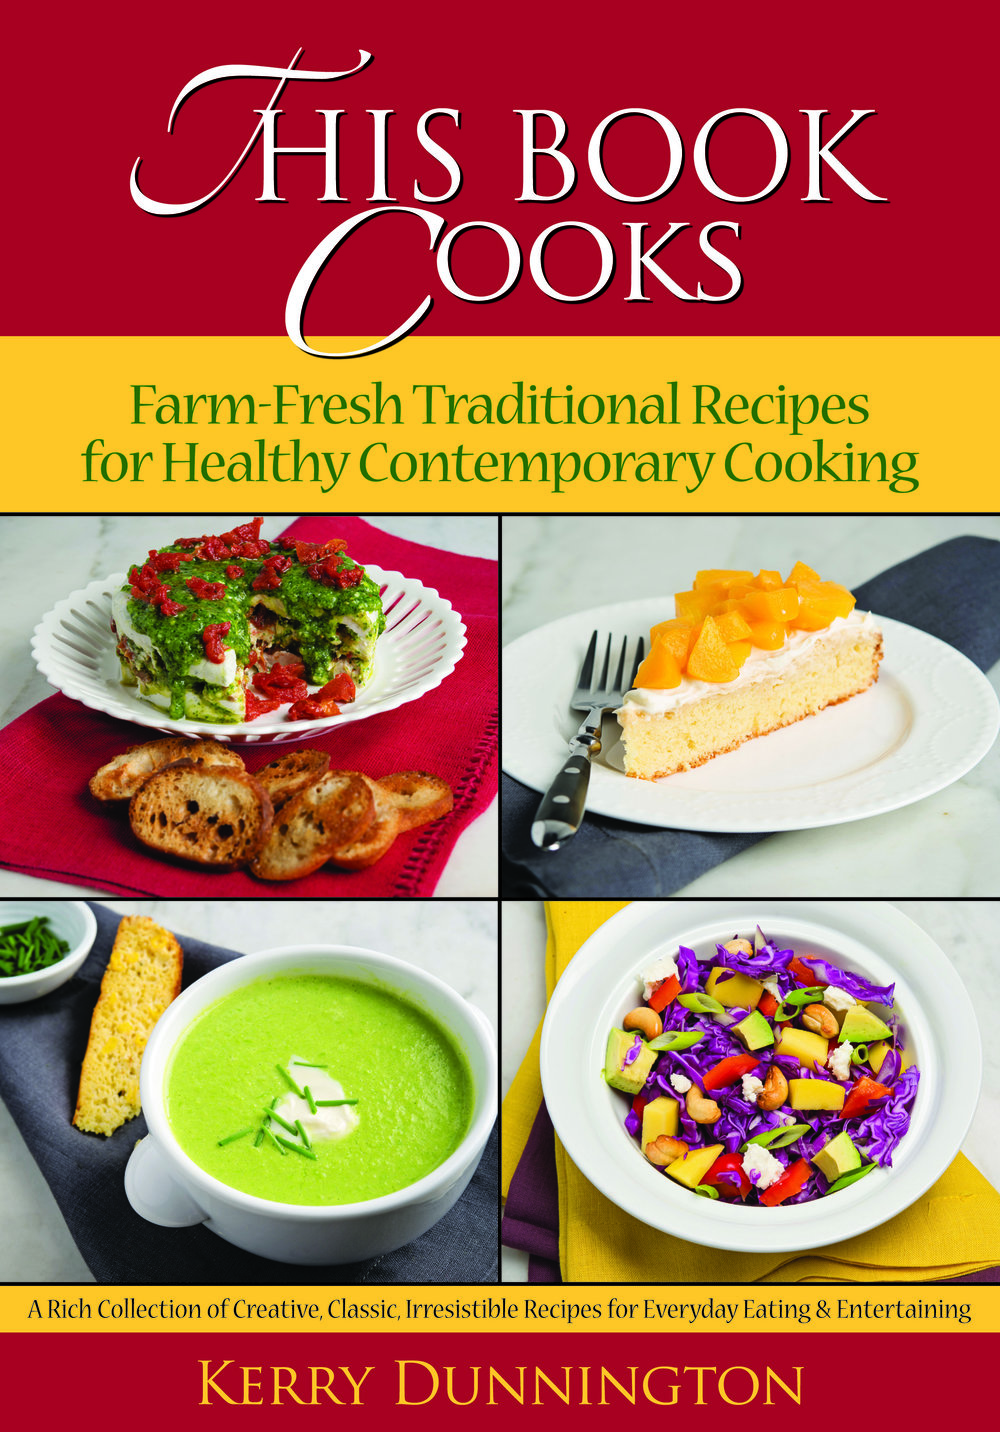 Click here to get This Book Cooks on Amazon